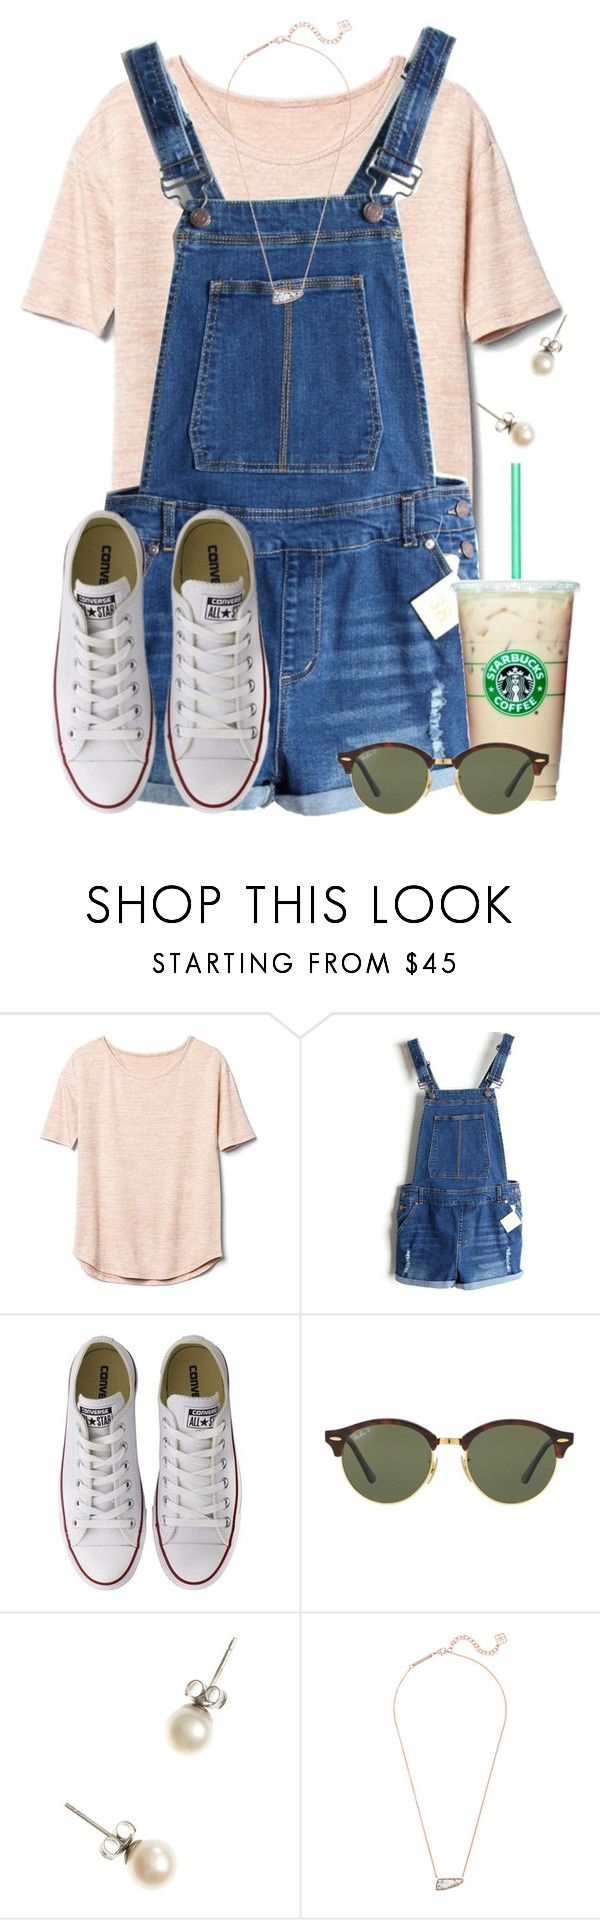 """""""I really really want some overall shorts for this Florida weather"""" by flroasburn on Polyvore featuring Gap, Converse, Ray-Ban, J.Crew and Kendra Scott"""